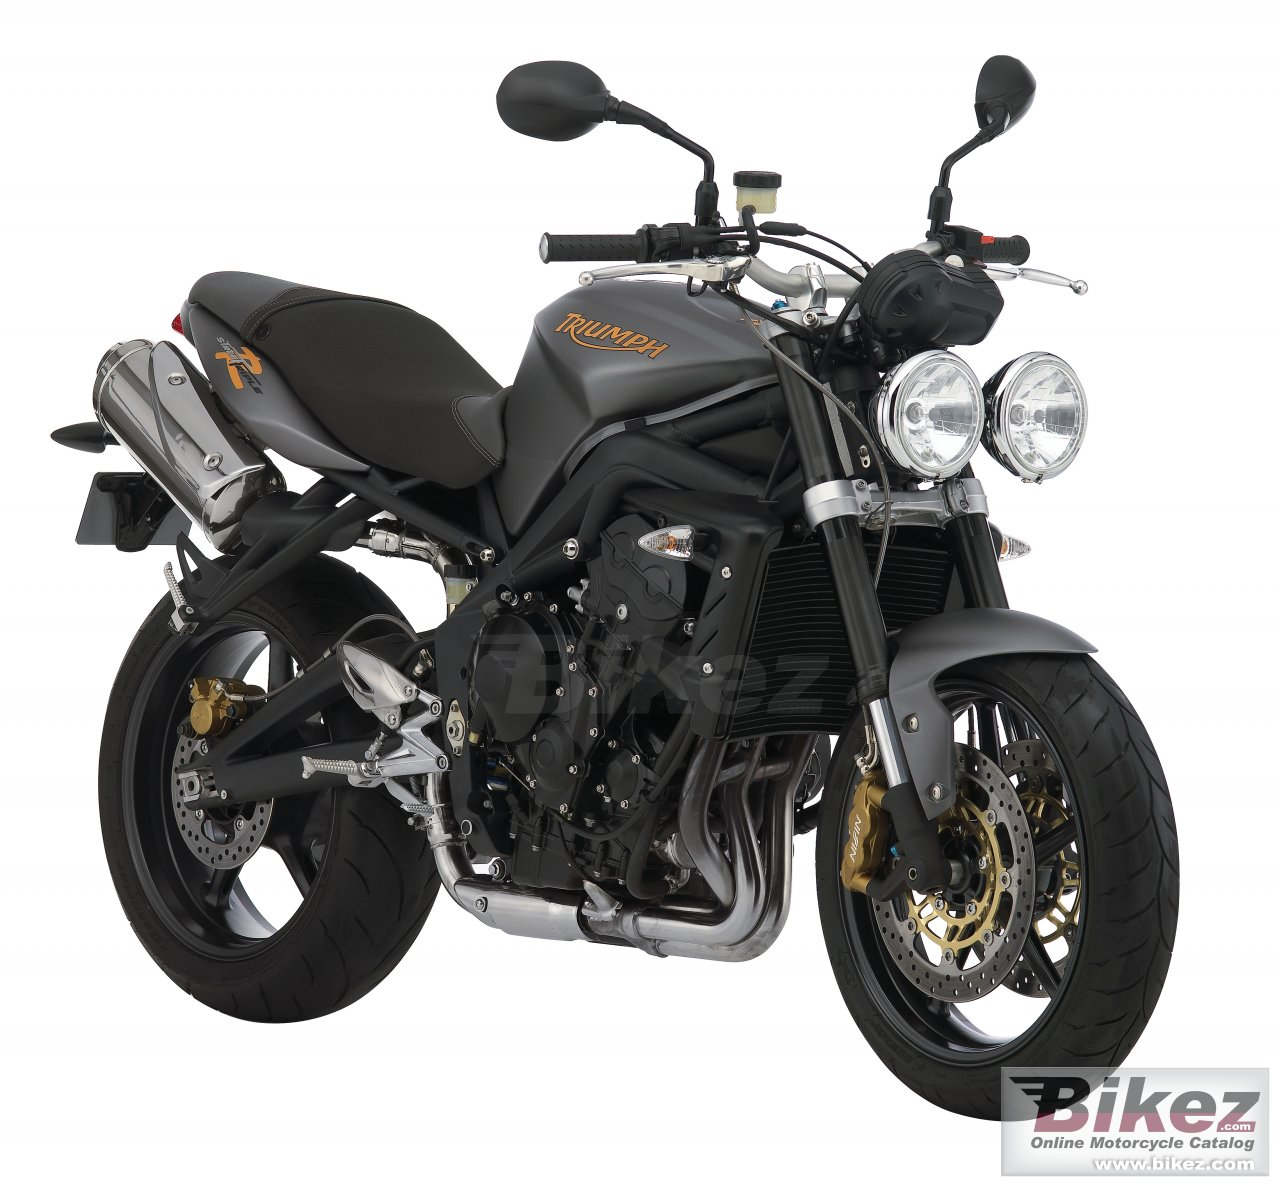 Big Triumph street triple r picture and wallpaper from Bikez.com